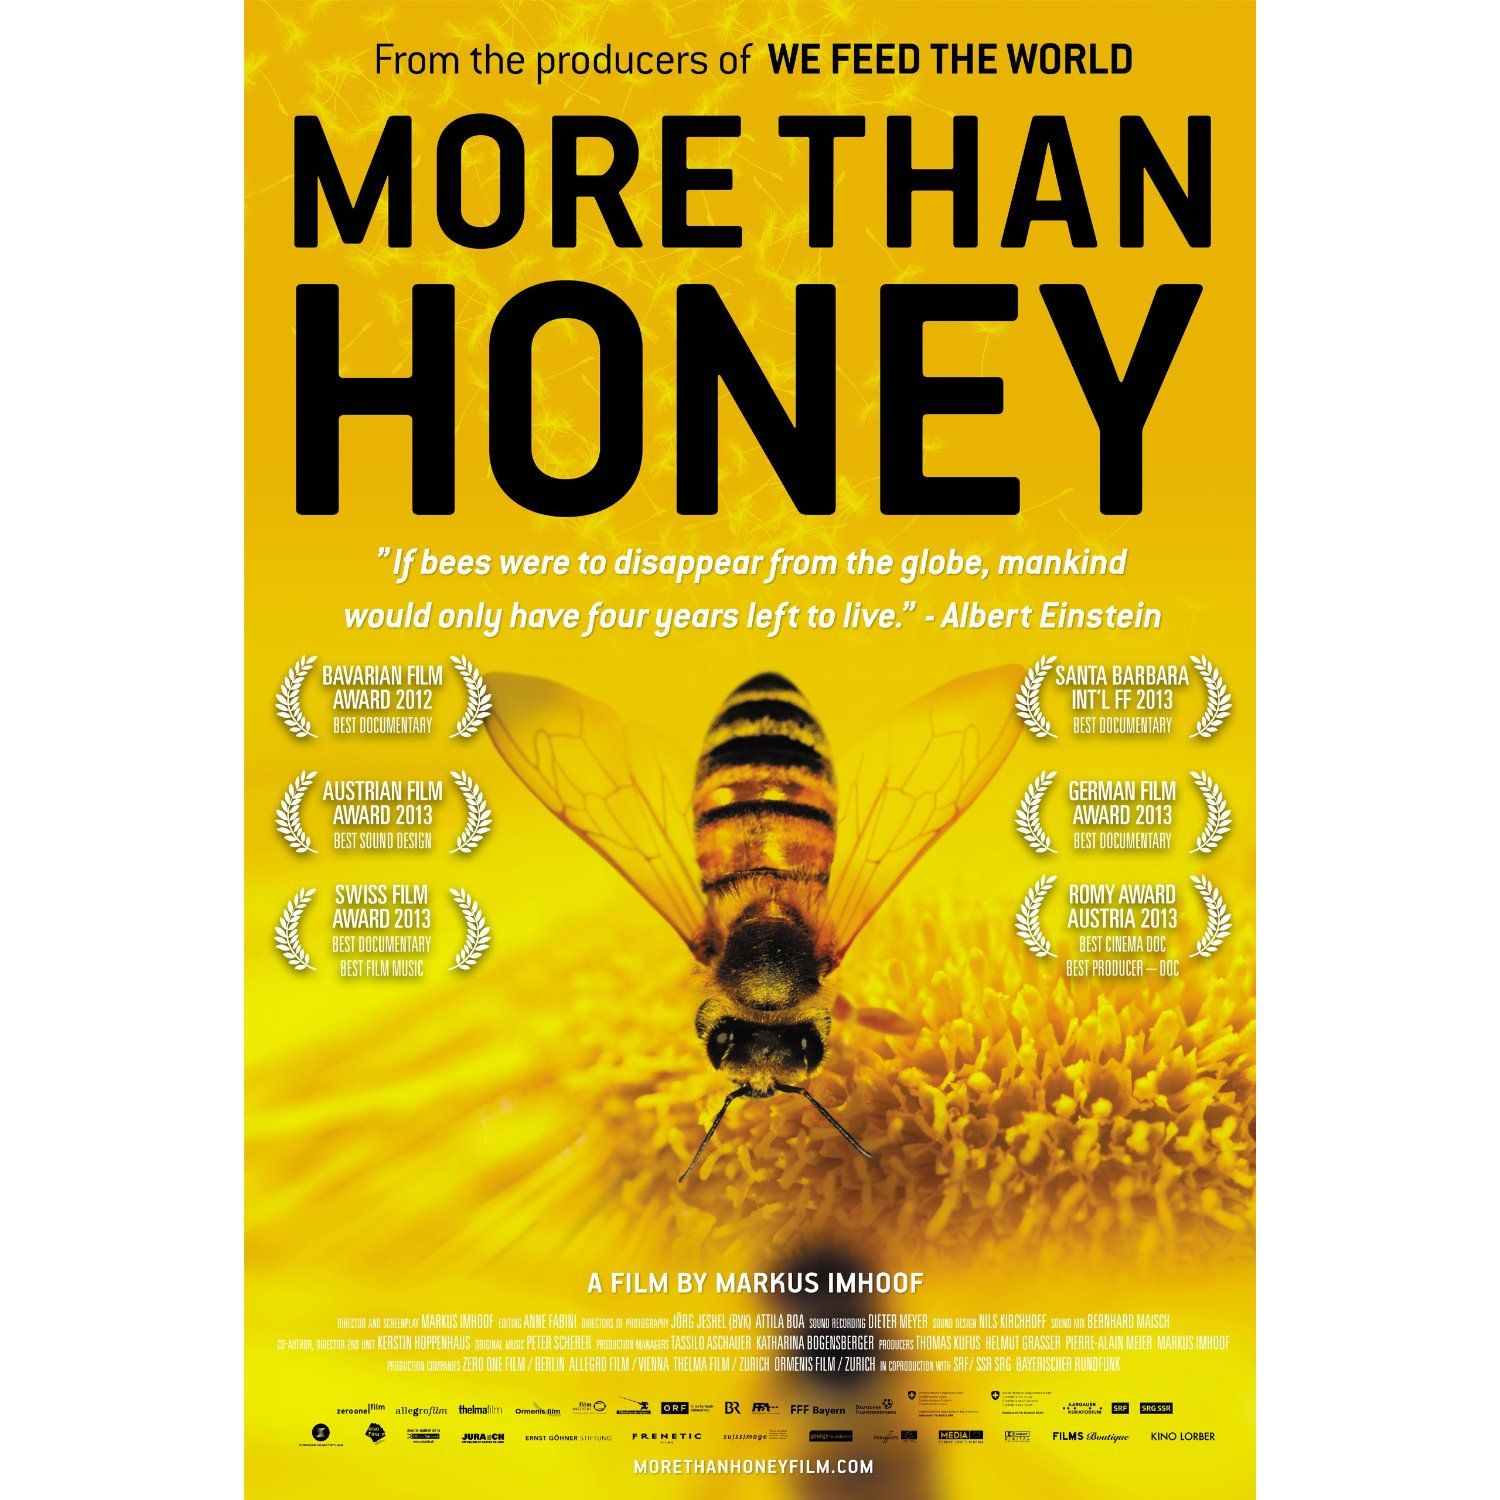 More Than Honey Blu Ray Amazon Ca John Hurt Markus Imhoof Dvd Releases In Canada In March 2014 Med Filmy Knigi